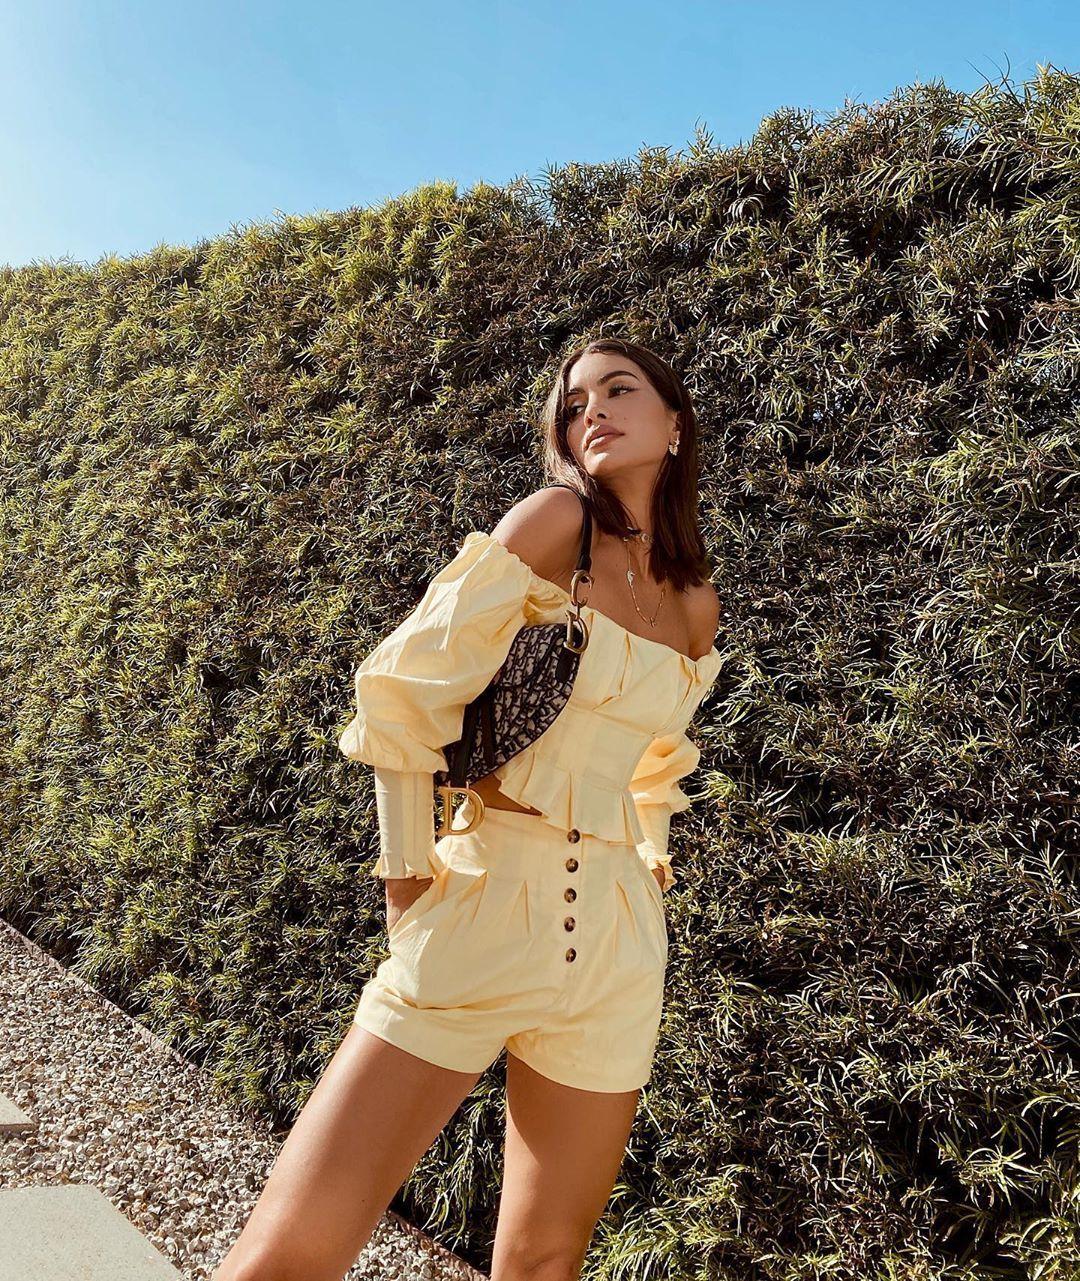 Camila Coelho wearing Pale yellow button up Camila Coelho shorts with high waist with pleated